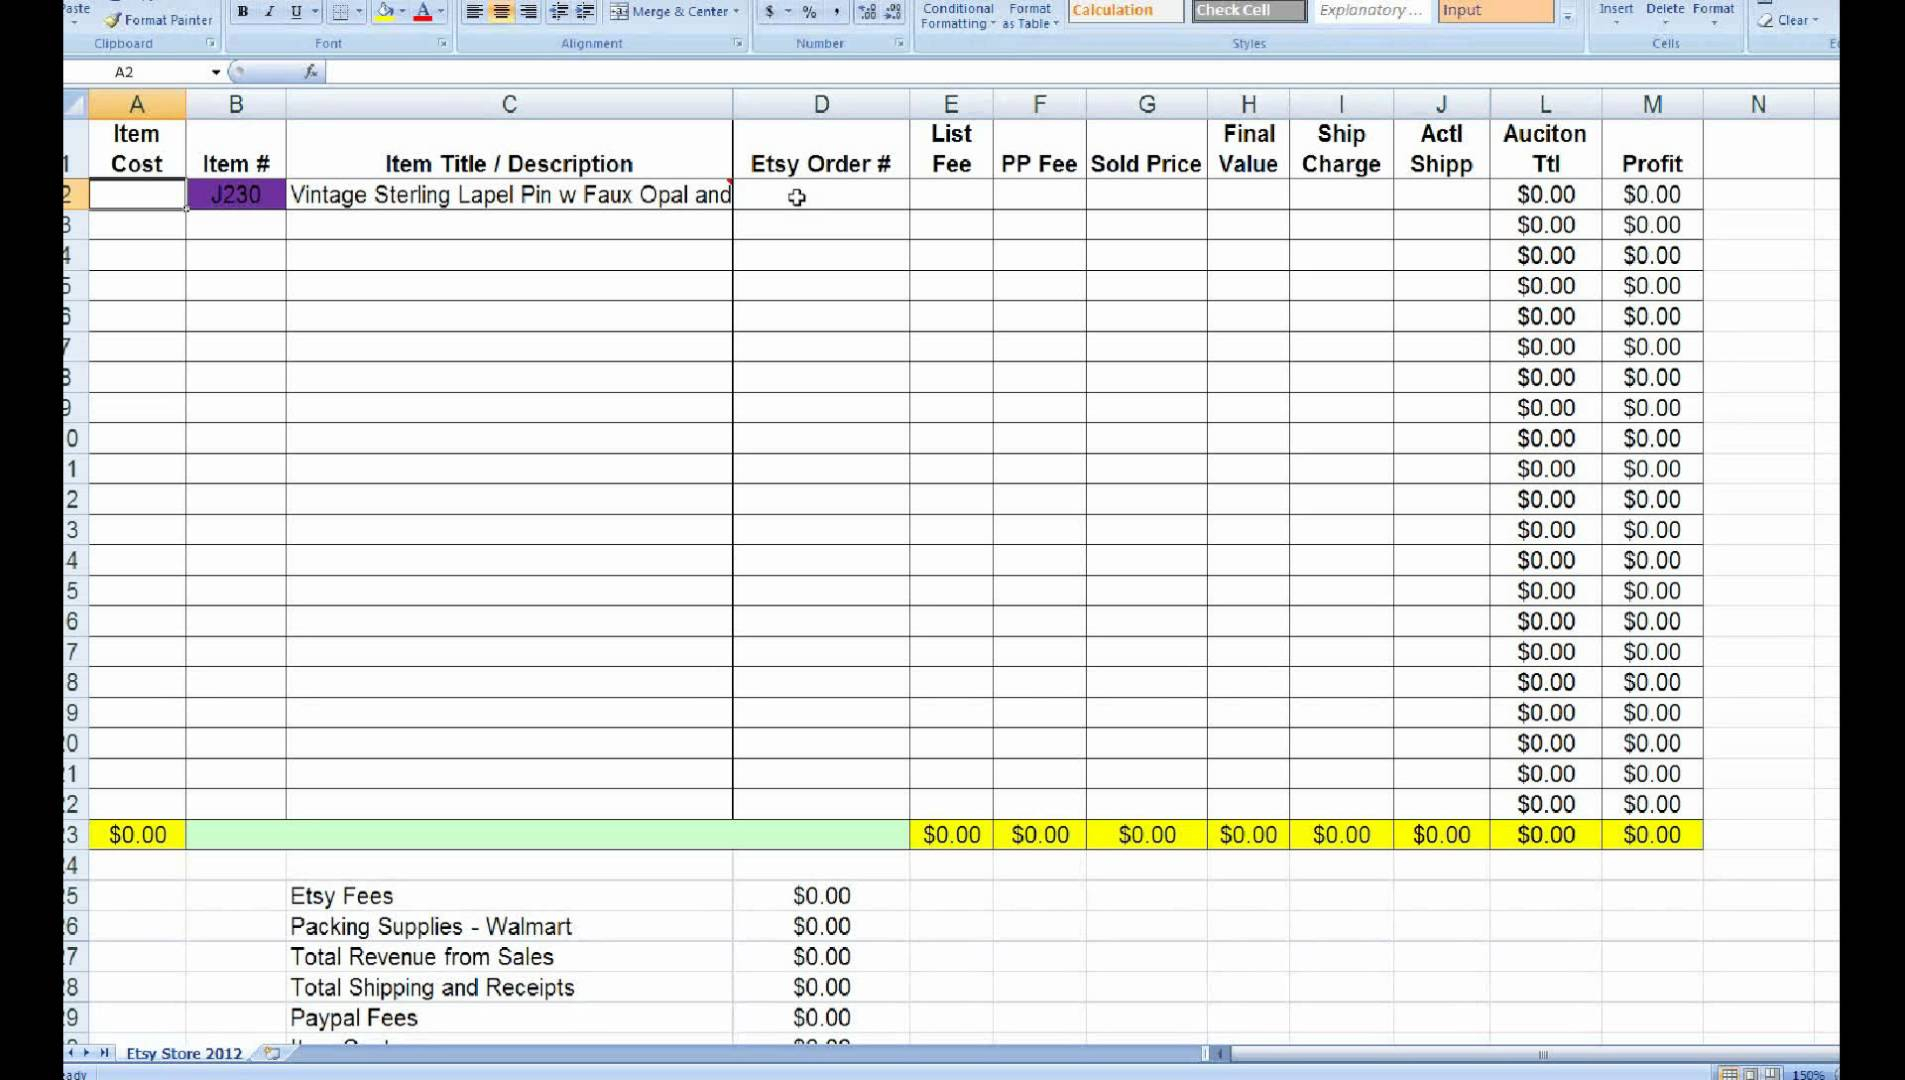 Project Profit And Loss Template | Papillon-Northwan intended for Profit Loss Spreadsheet Template Free